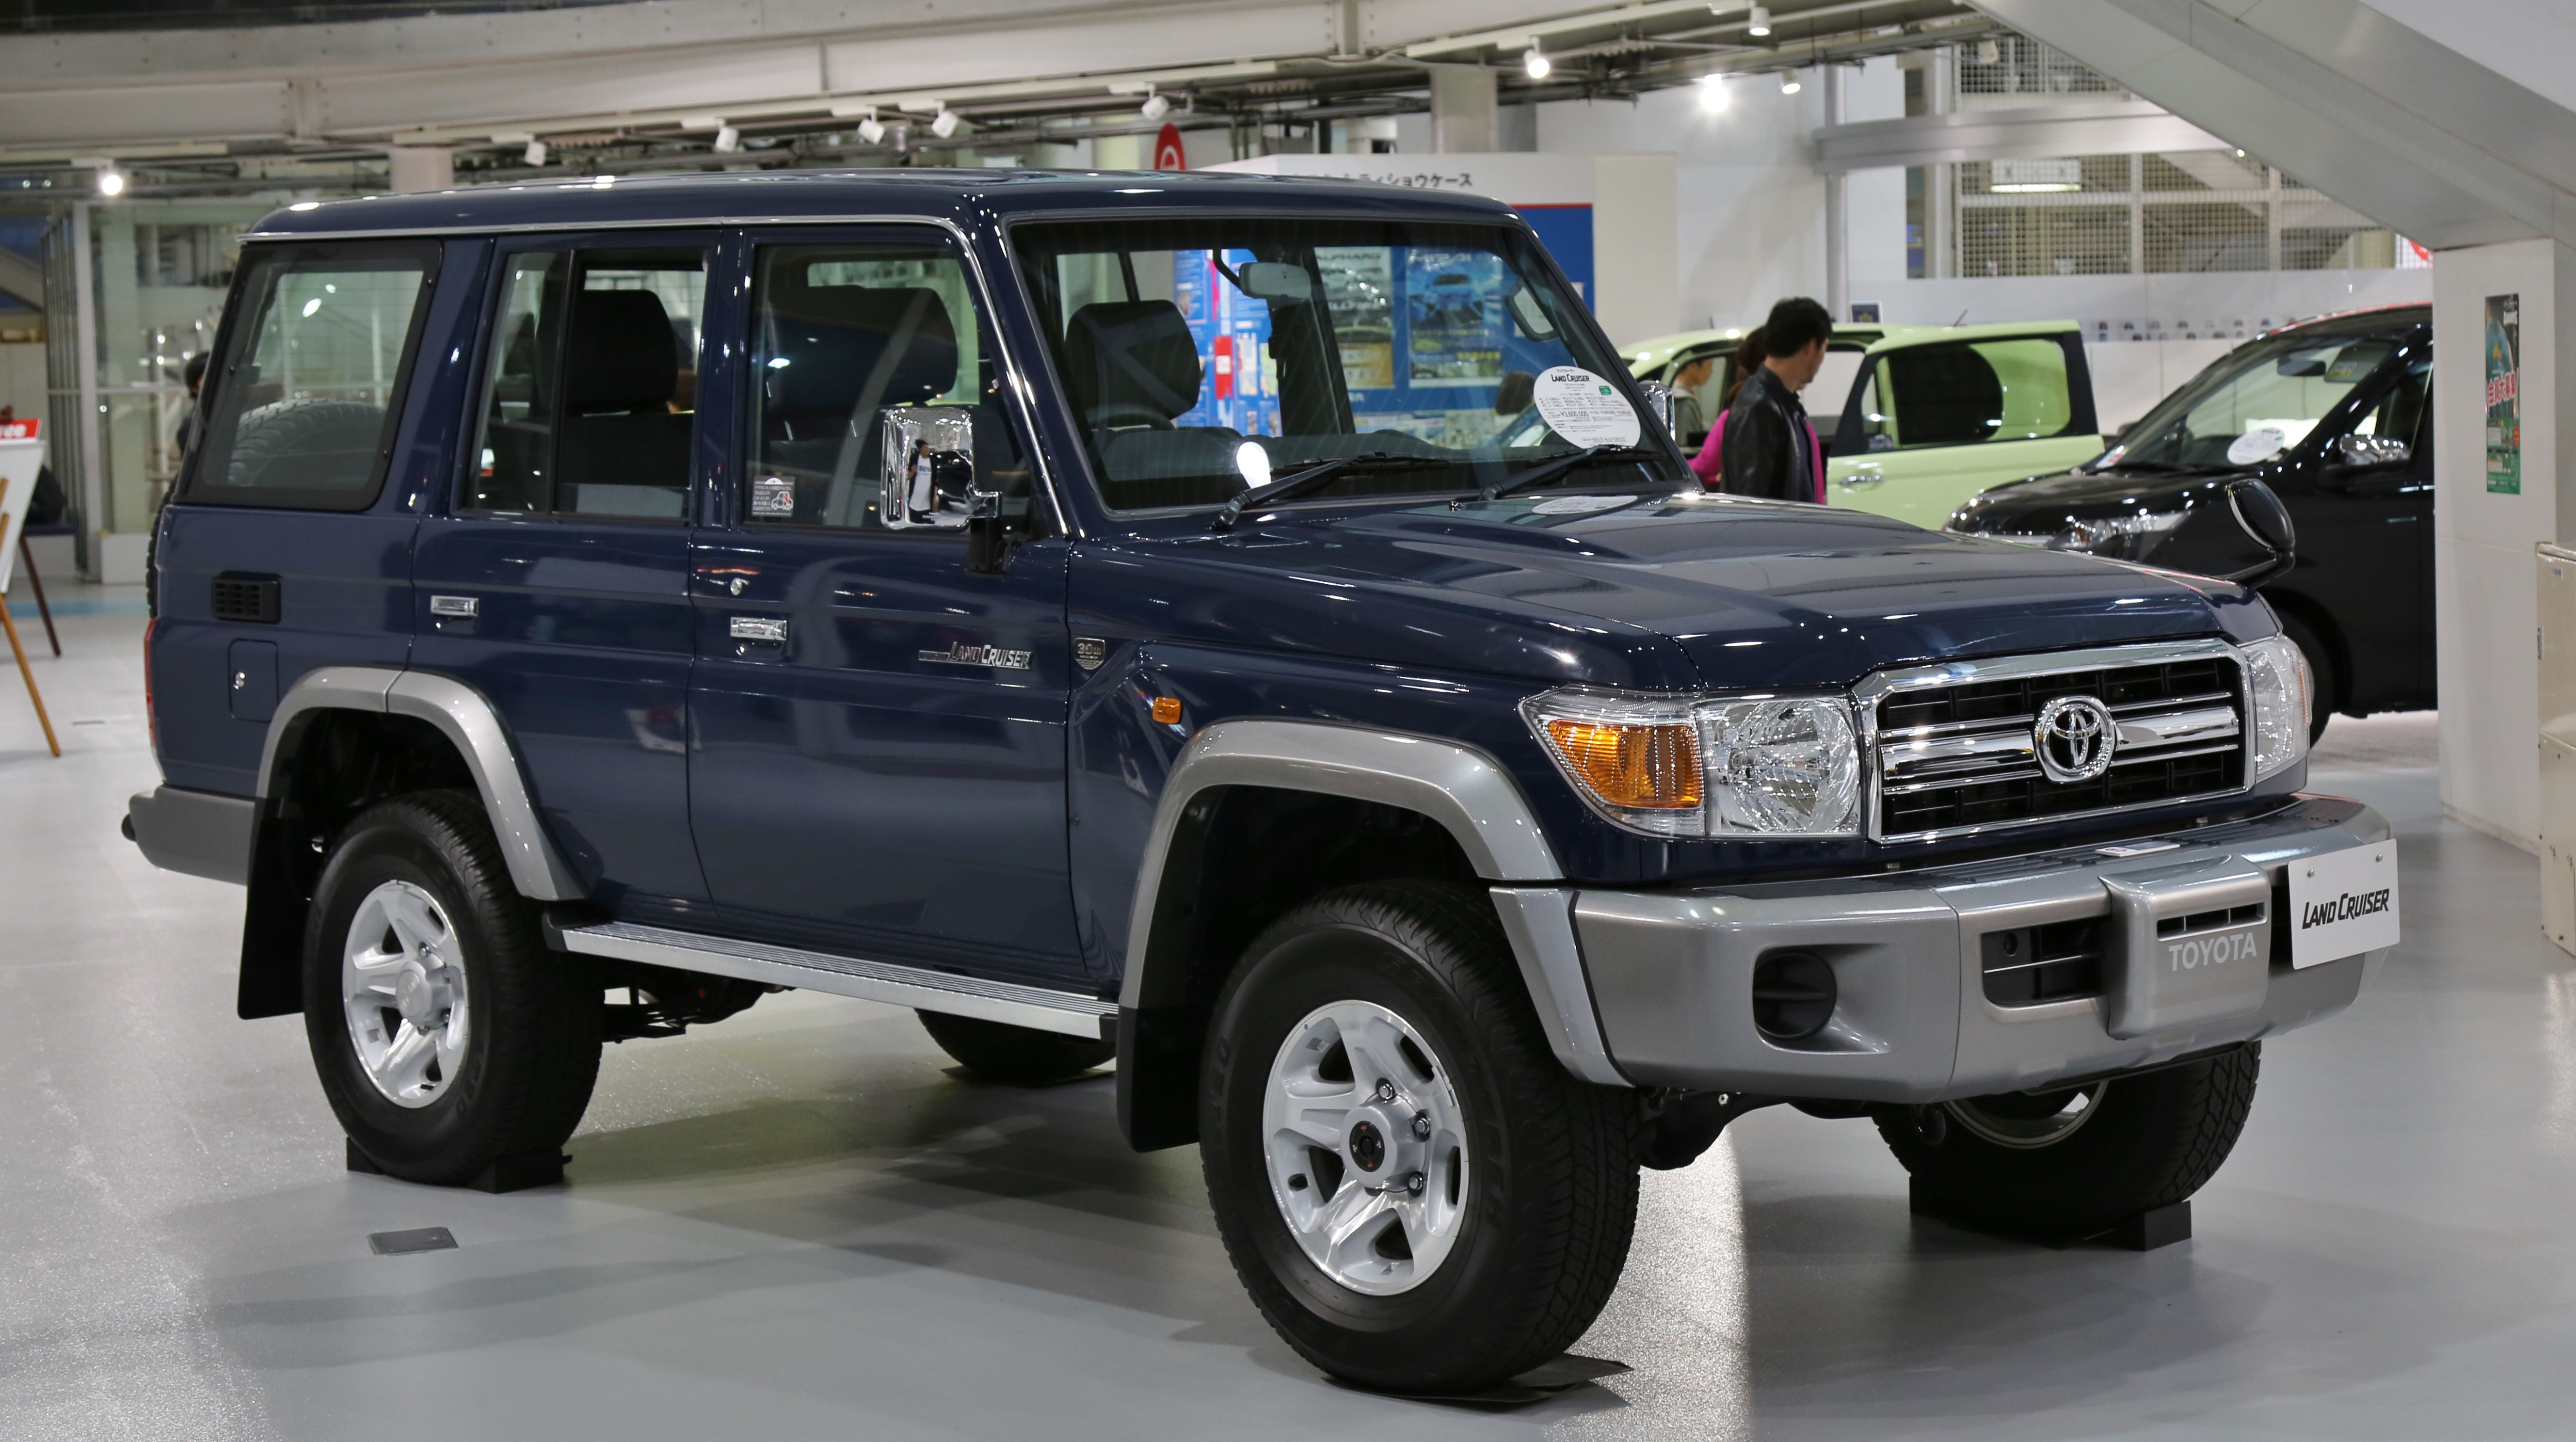 land gxr cruiser cars review toyota write price a new overview